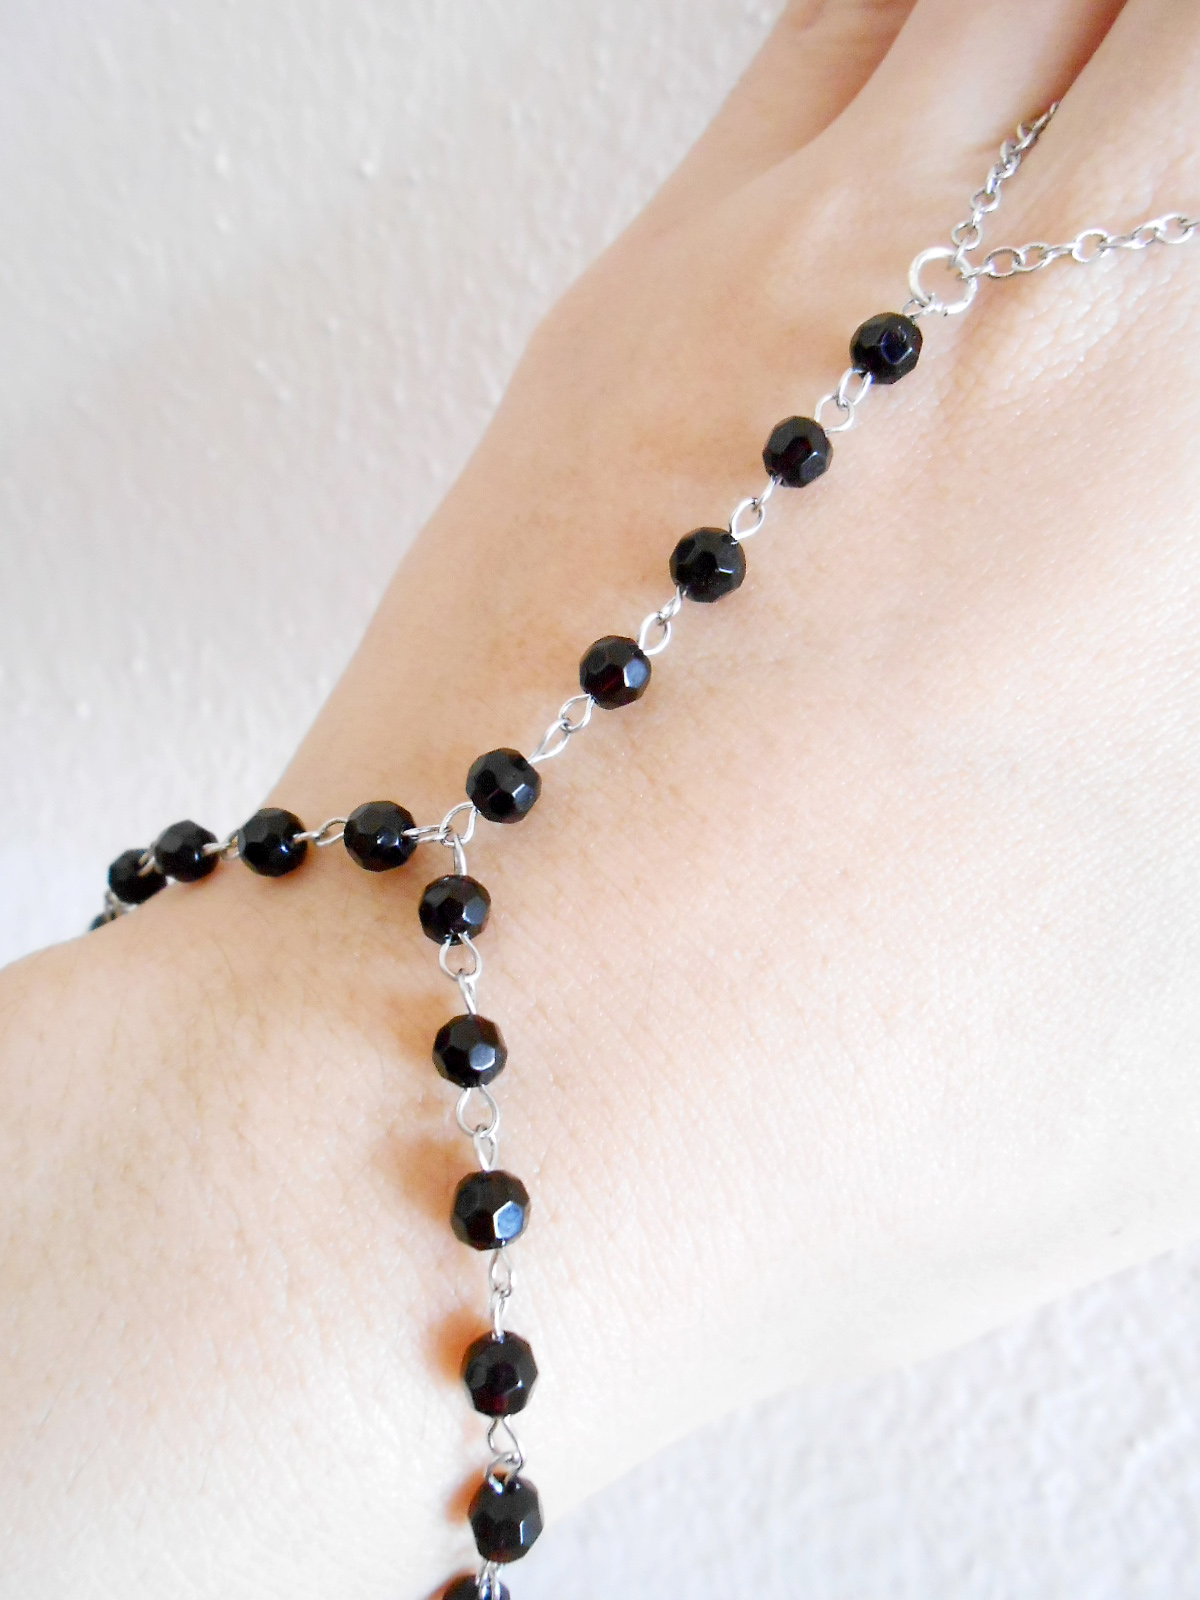 Slave bracelet ring cutting black onyx beads hand link chain jewelry